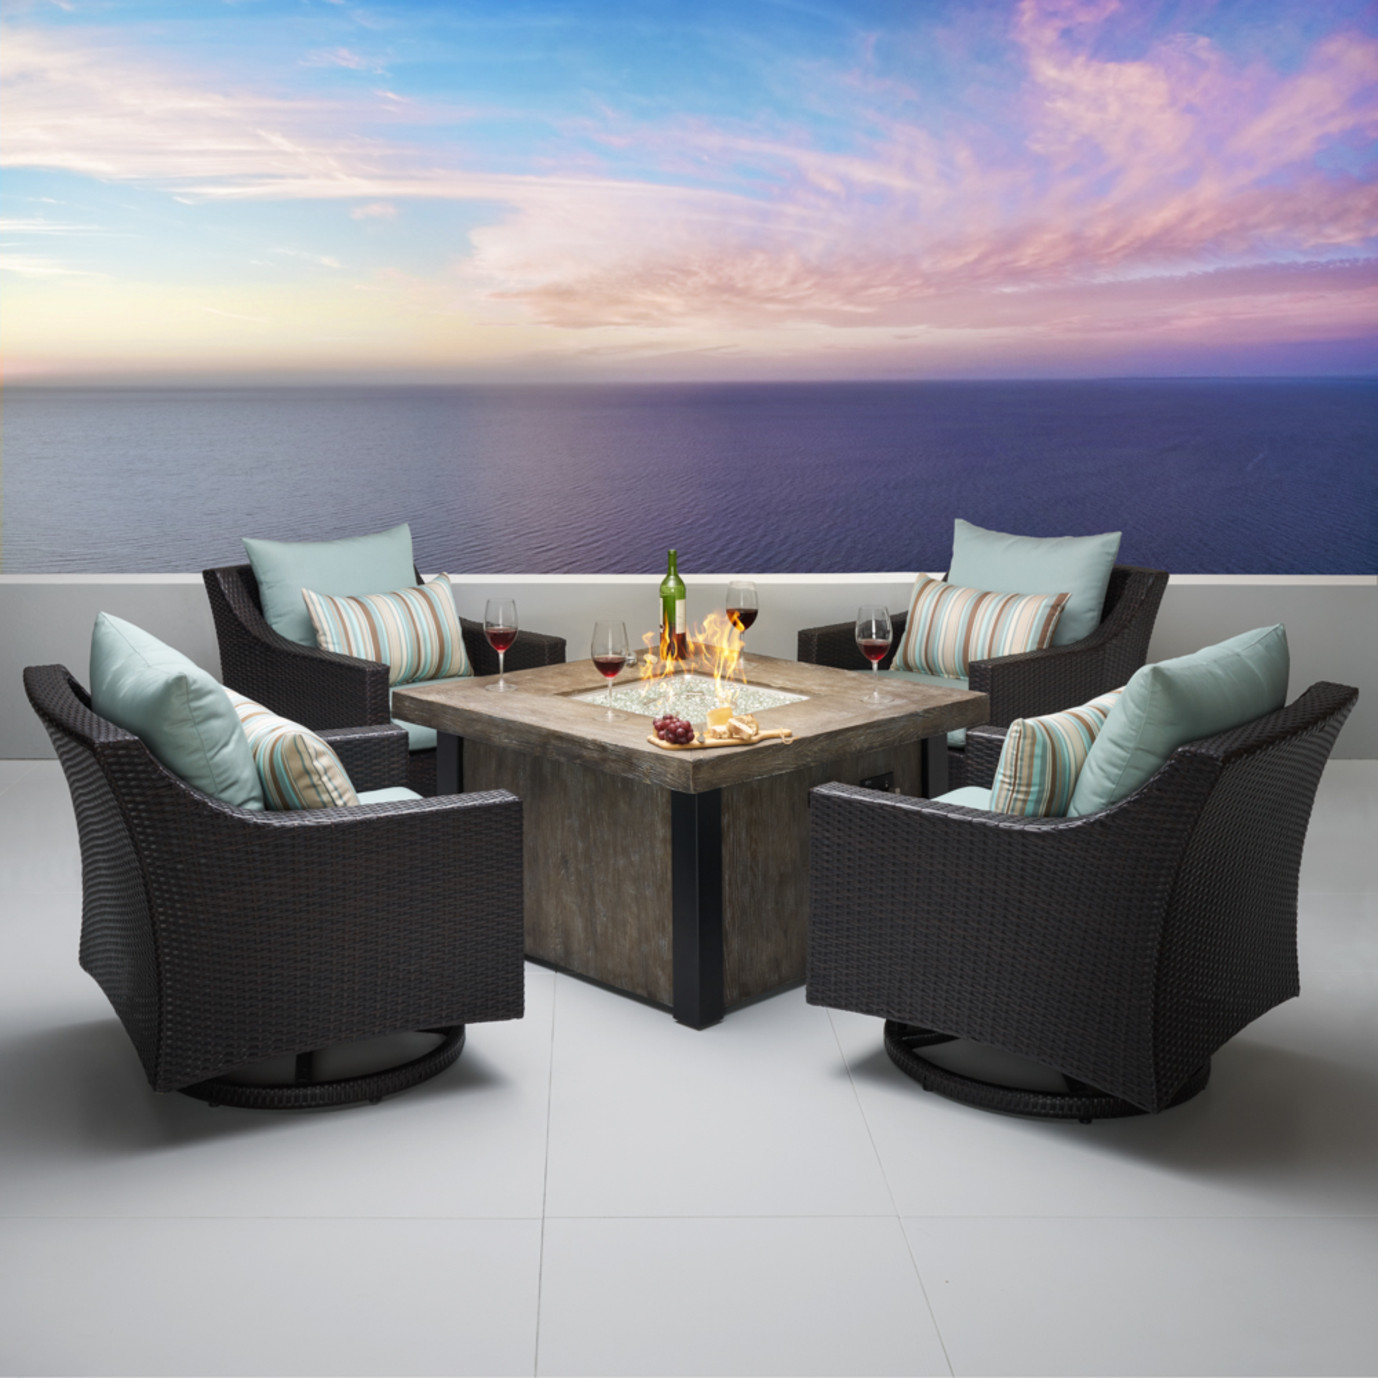 Deco™ 5 Piece Motion Fire Chat Set - Bliss Blue